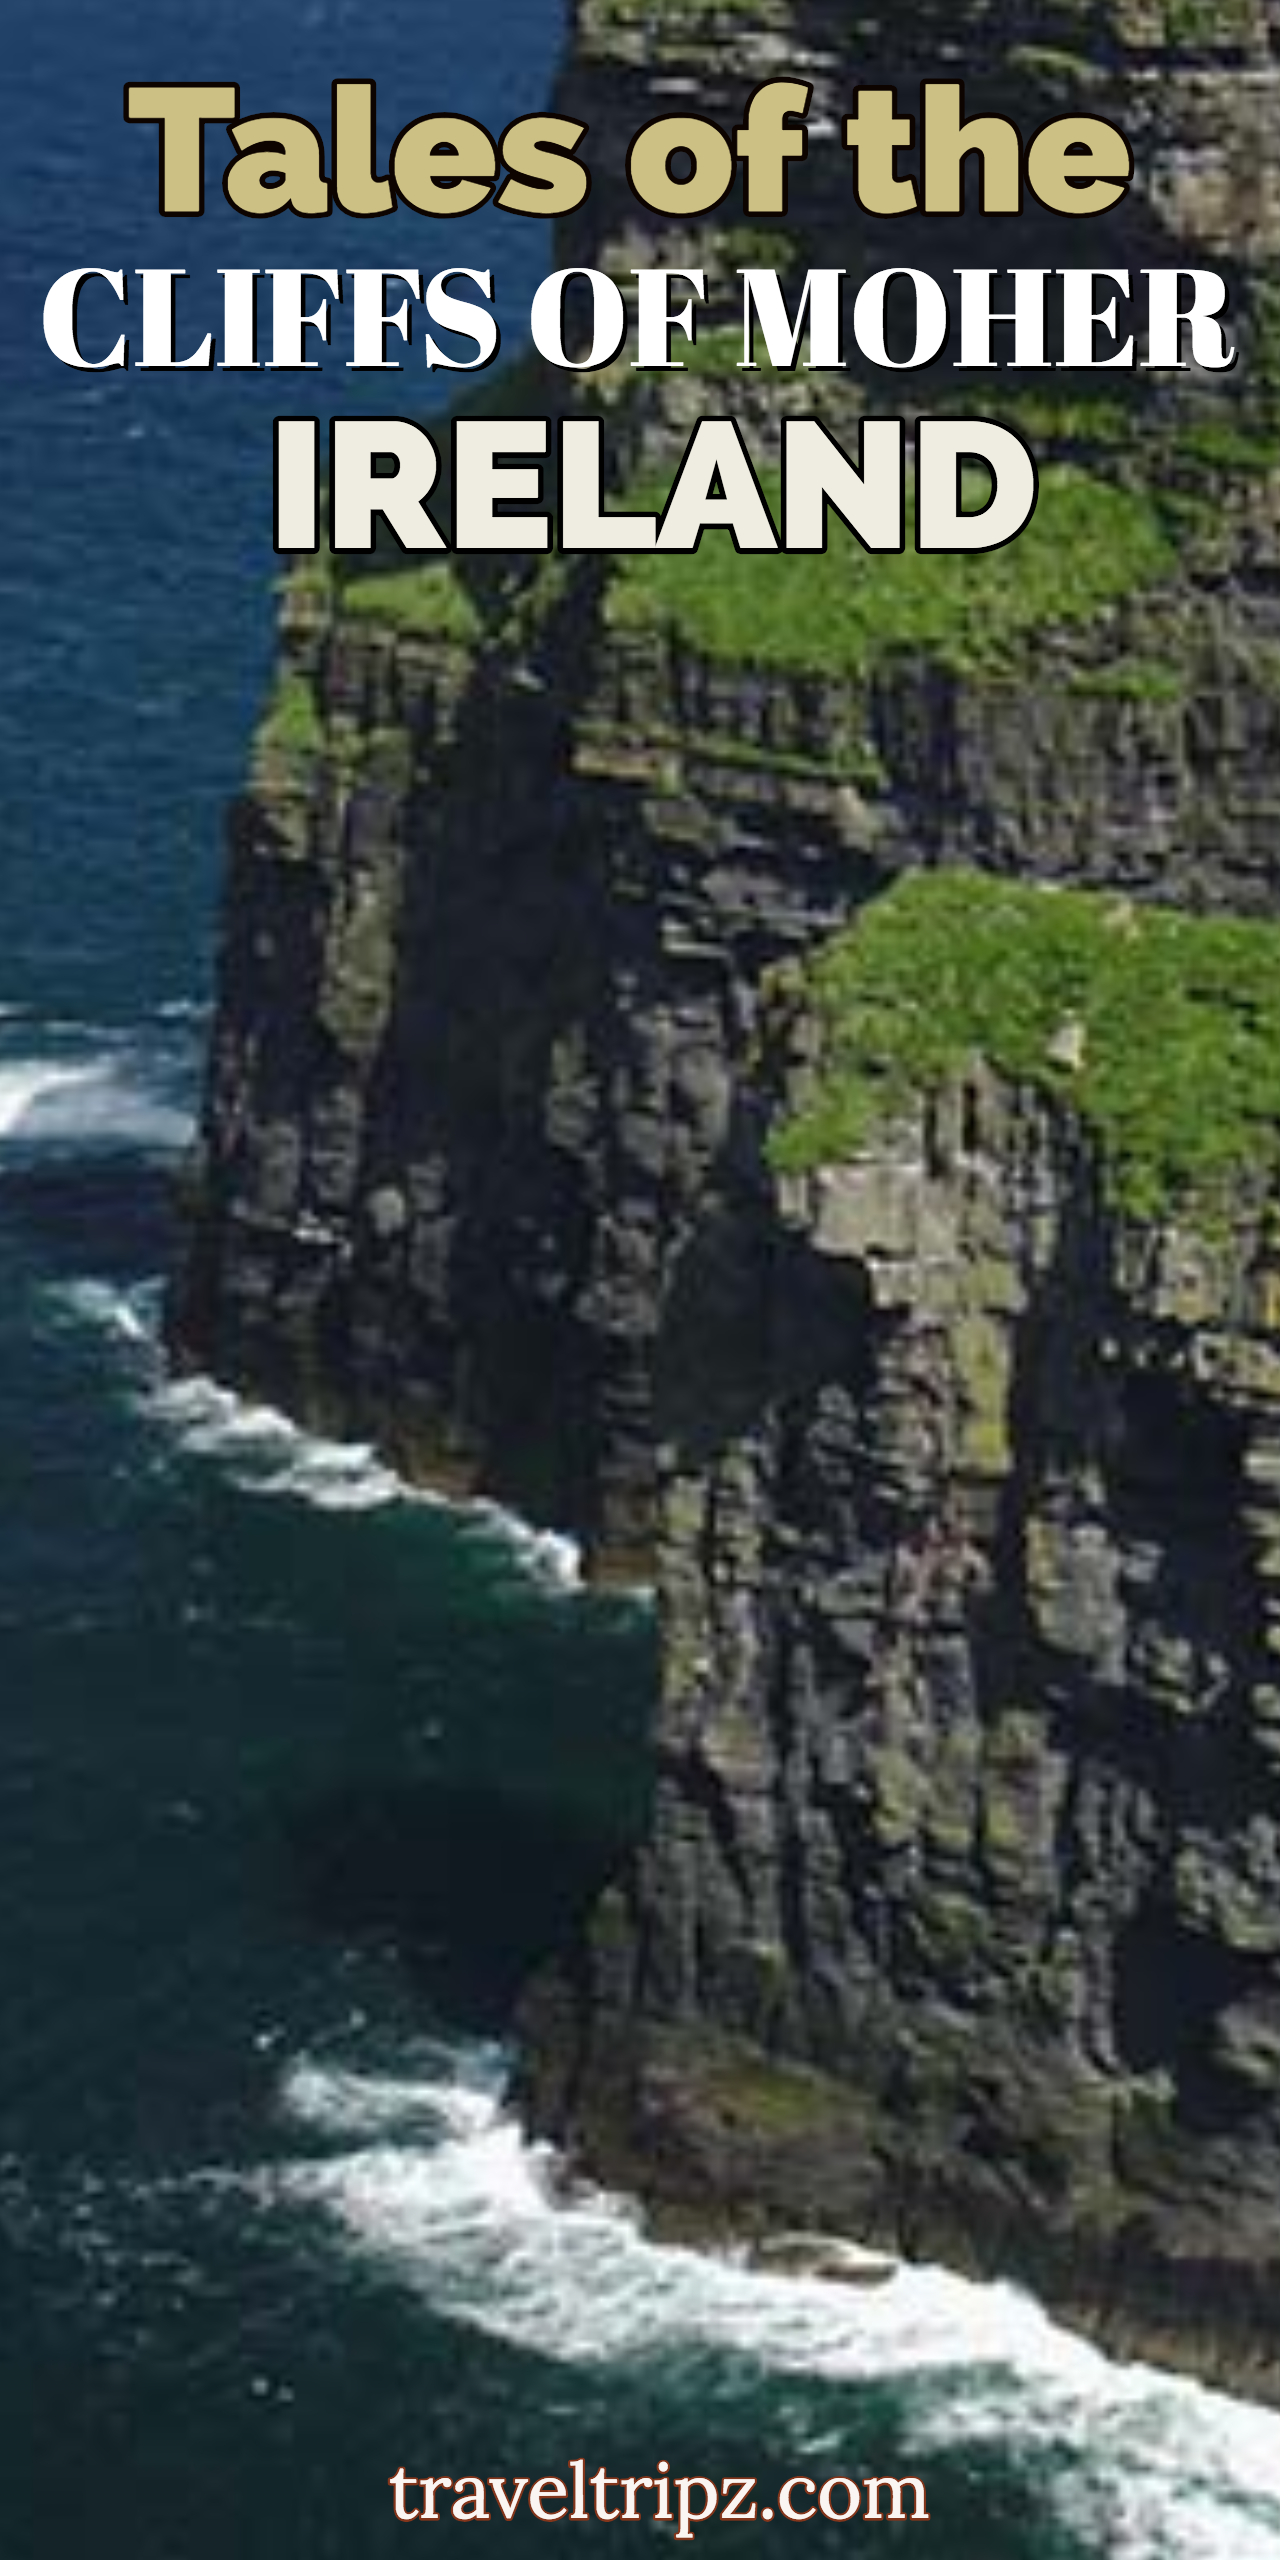 Travelling to Ireland the a visit to the spectacular Cliffs of Moher, is well worth the trip..Here are some of the old tales told of the cliffs. Spectacular views of the Cliffs of Moher.  #Ireland. #UK #CliffsofMoher #travel